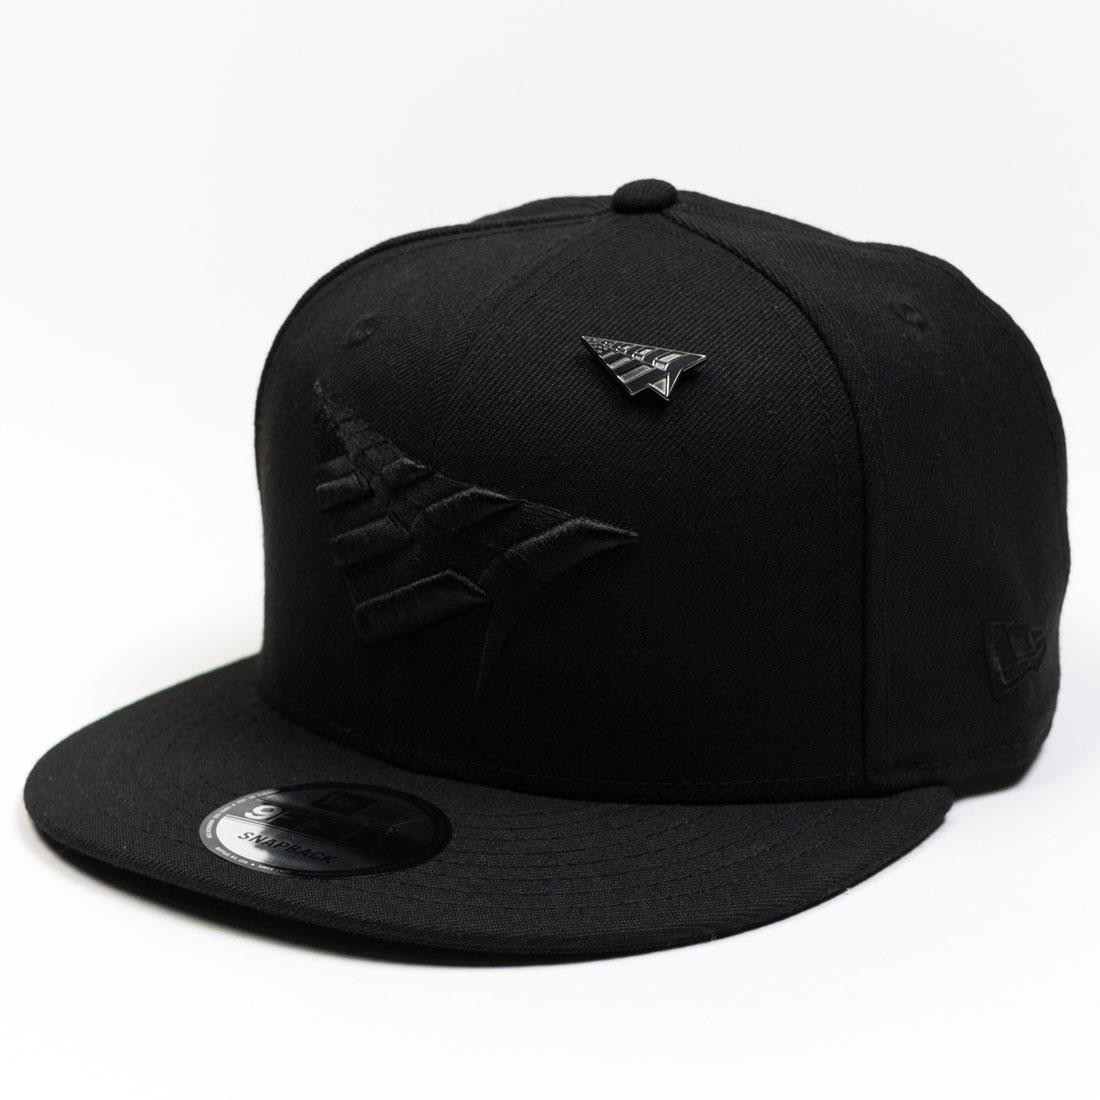 Paper Planes The Crown Snapback With Pin and Black Undervisor (black / black)